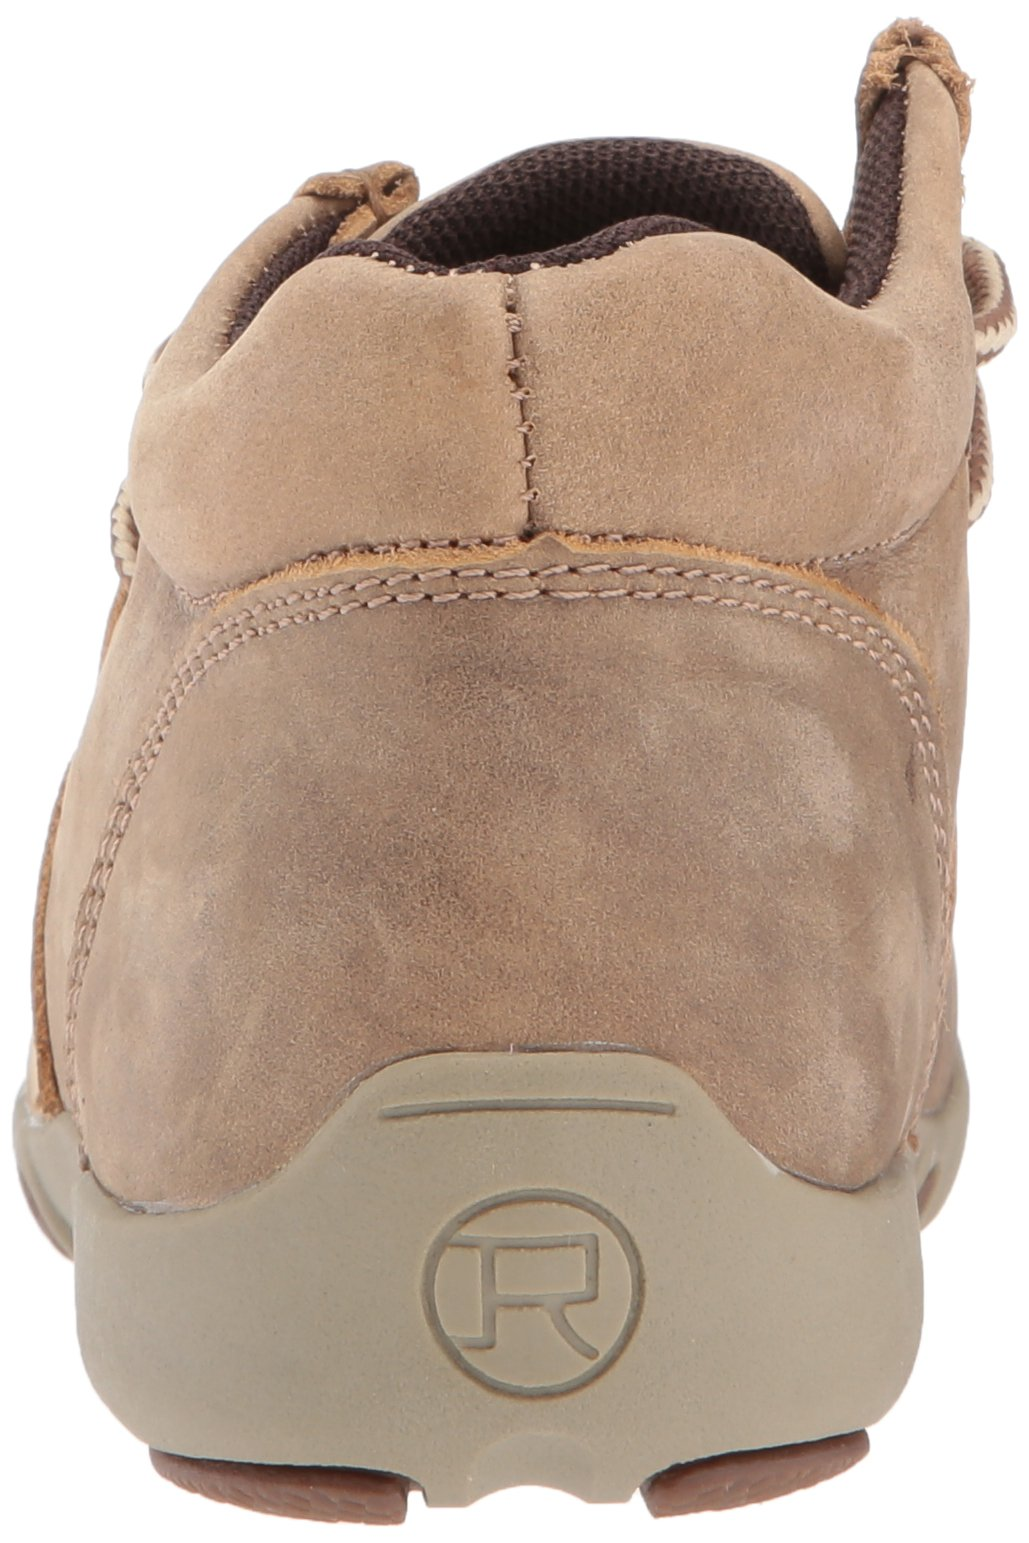 ROPER Boys' Bode, tan 10 M US Little Kid by ROPER (Image #2)